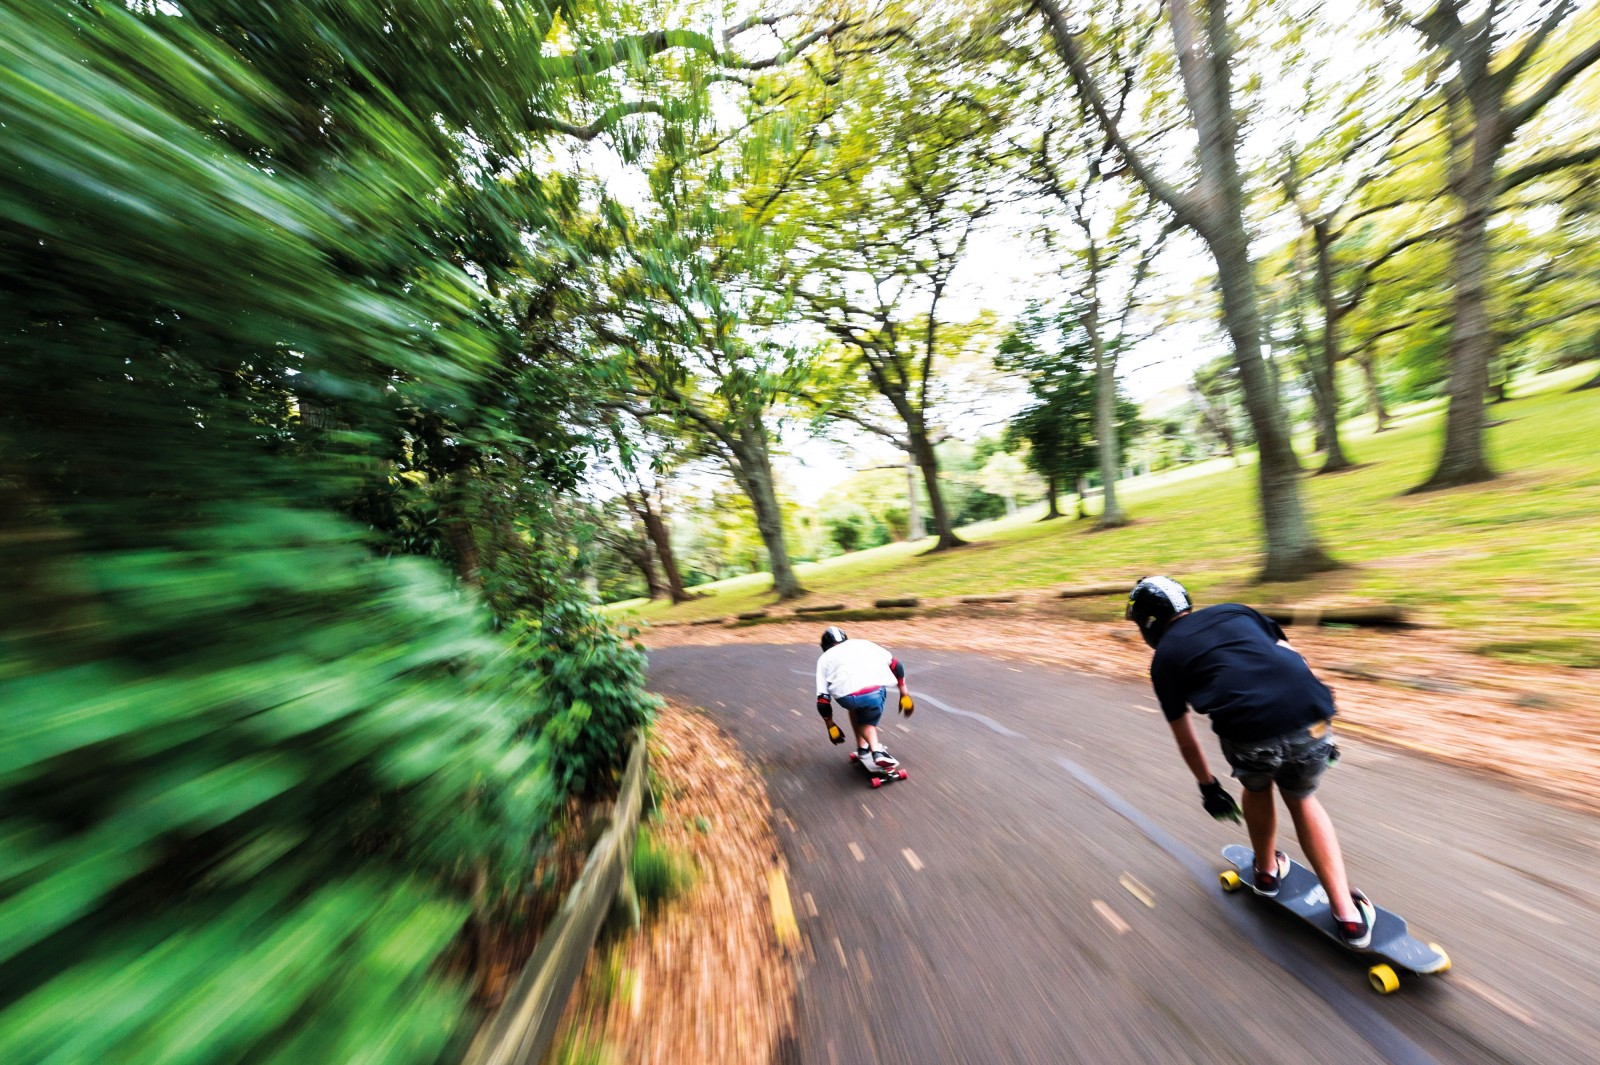 Longboarders Josef Scott (leading) and Max O'Neill head down Lovers Lane, a quiet tributary of asphalt branching off the main Domain Drive. From this side road a series of bush tracks wind through densely wooded groves and gullies that belie the park's proximity to the central city.